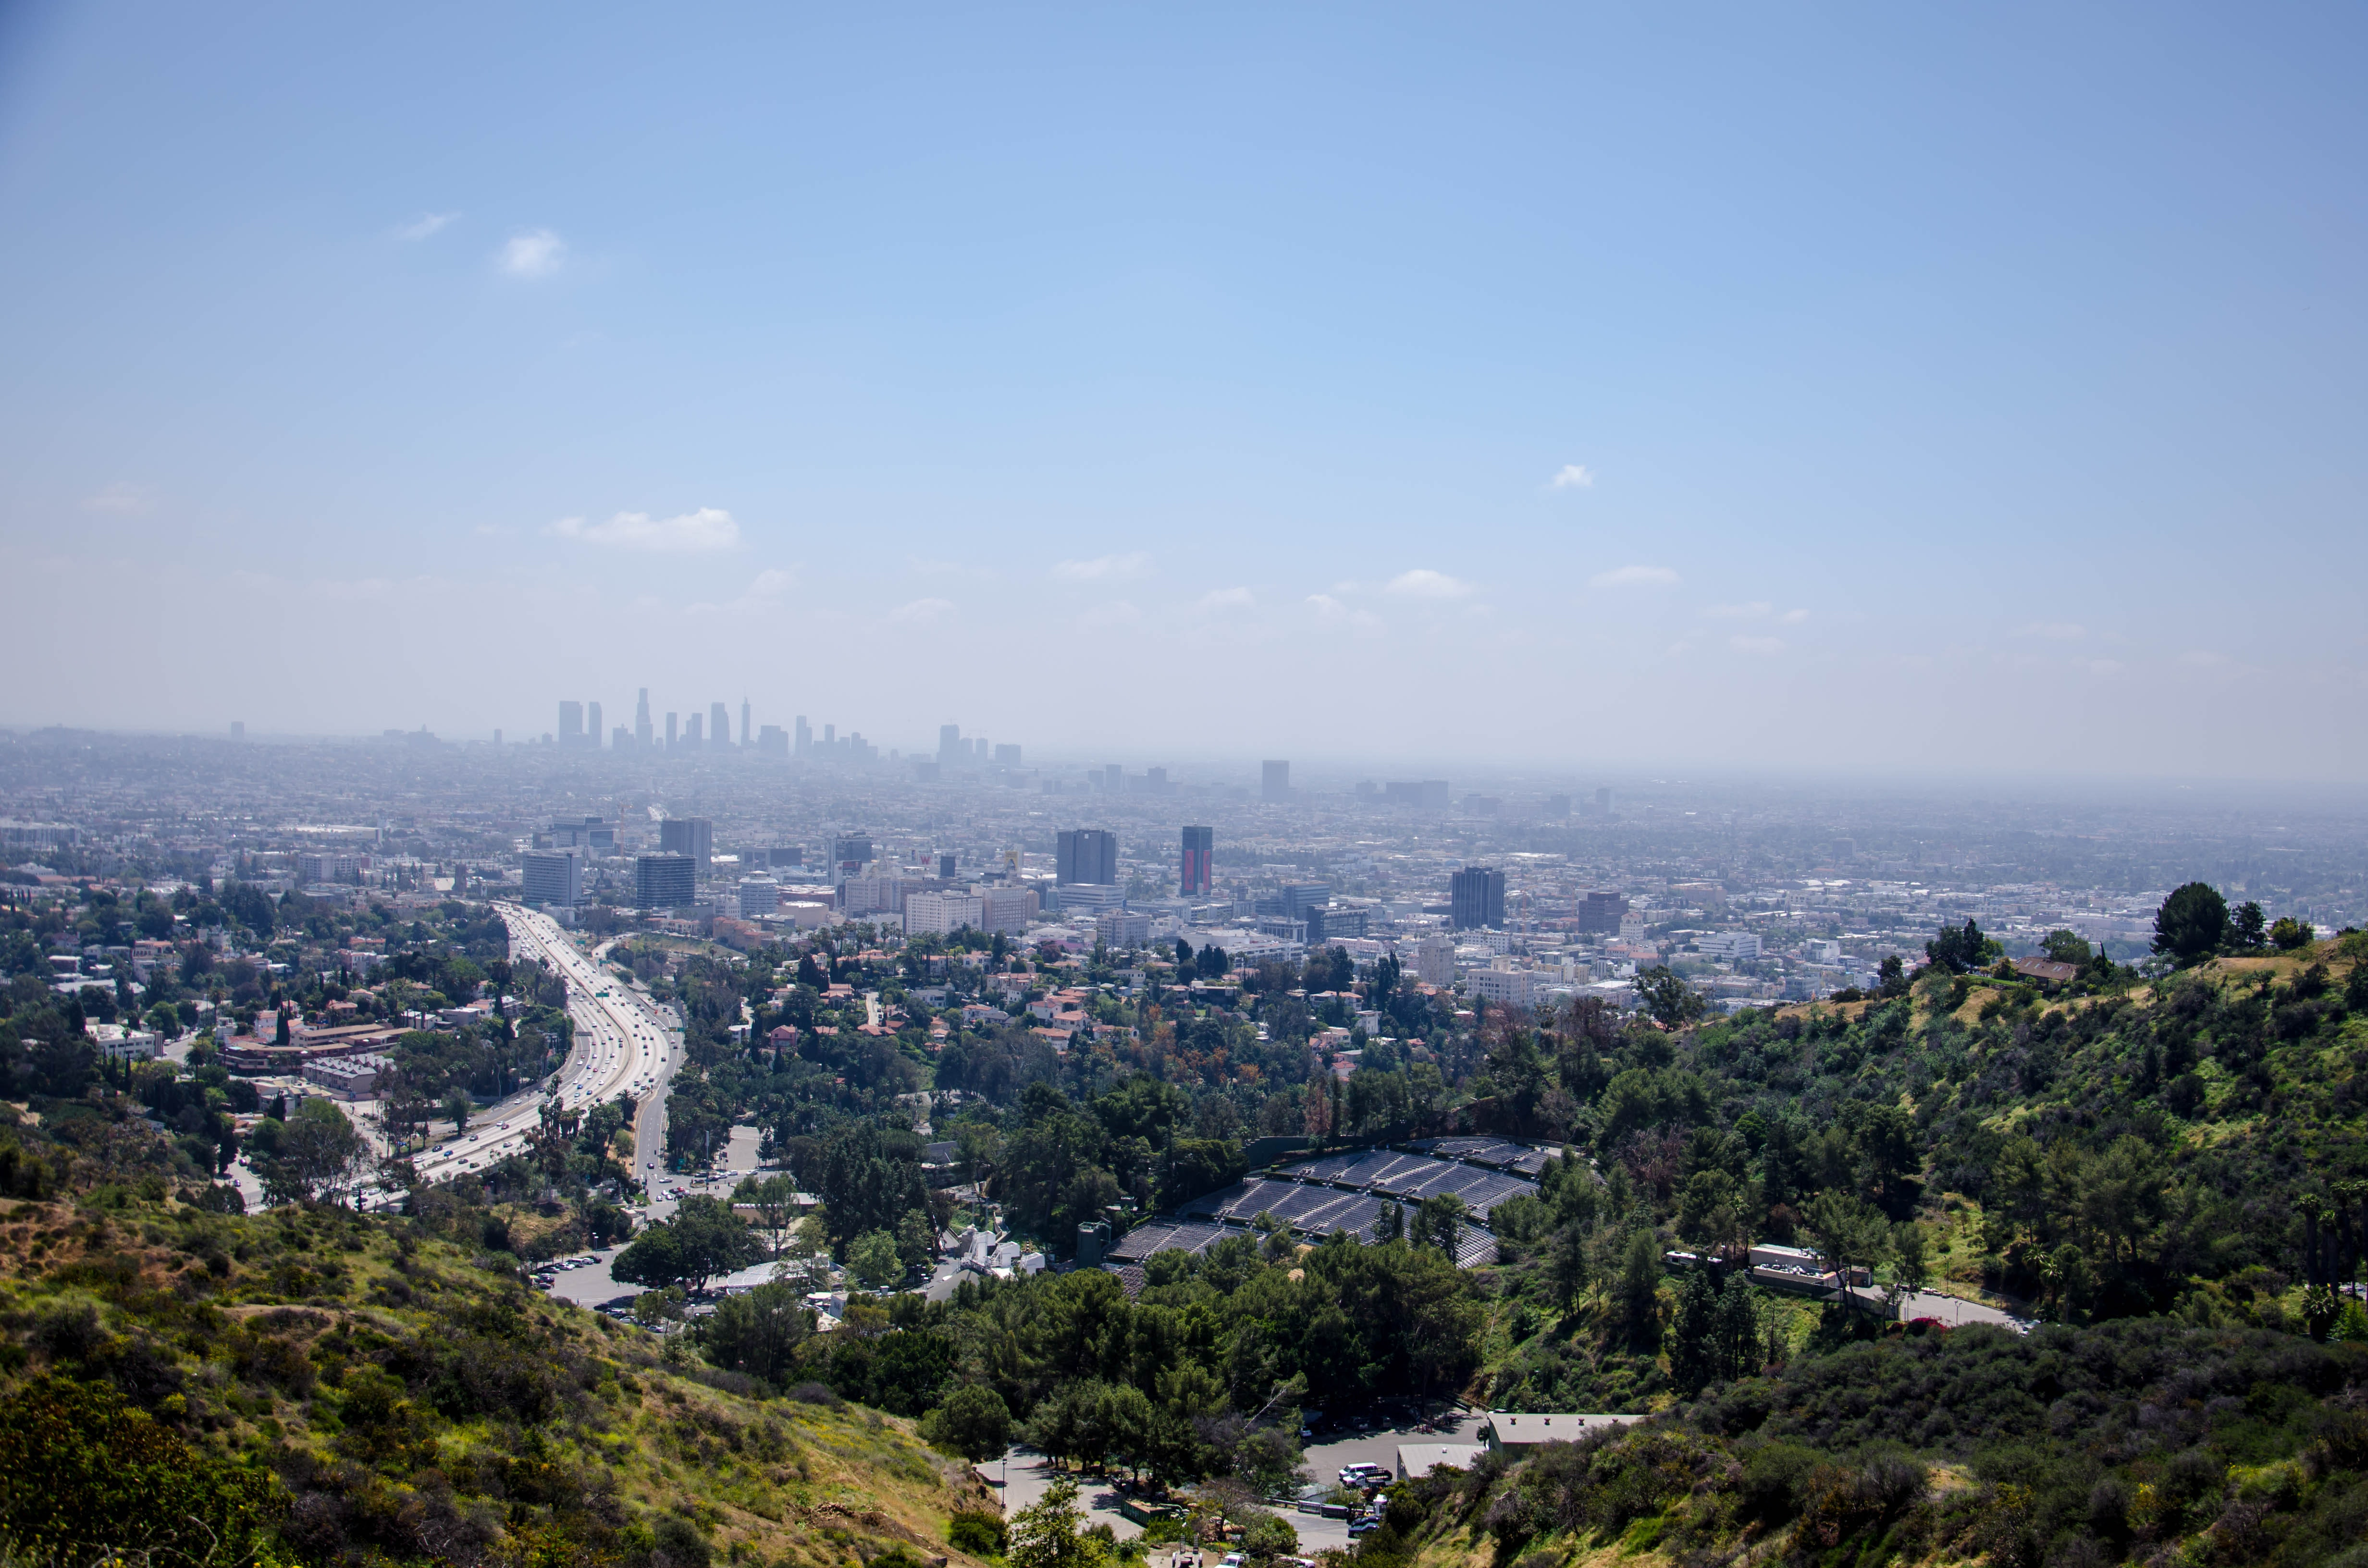 Aerial photo of Los Angeles, with the city skyline in the distance